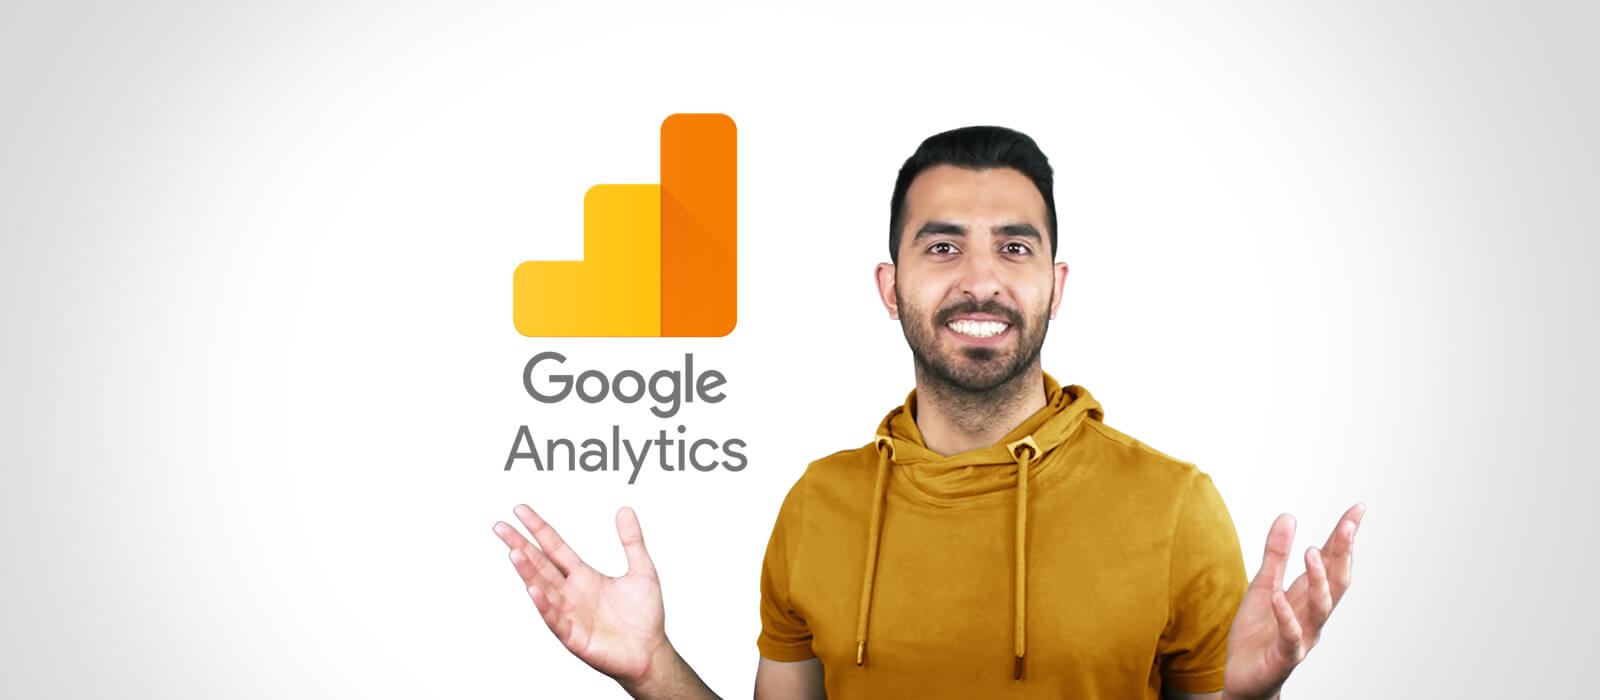 google-analytic-course-digital-marketing-pouya-eti